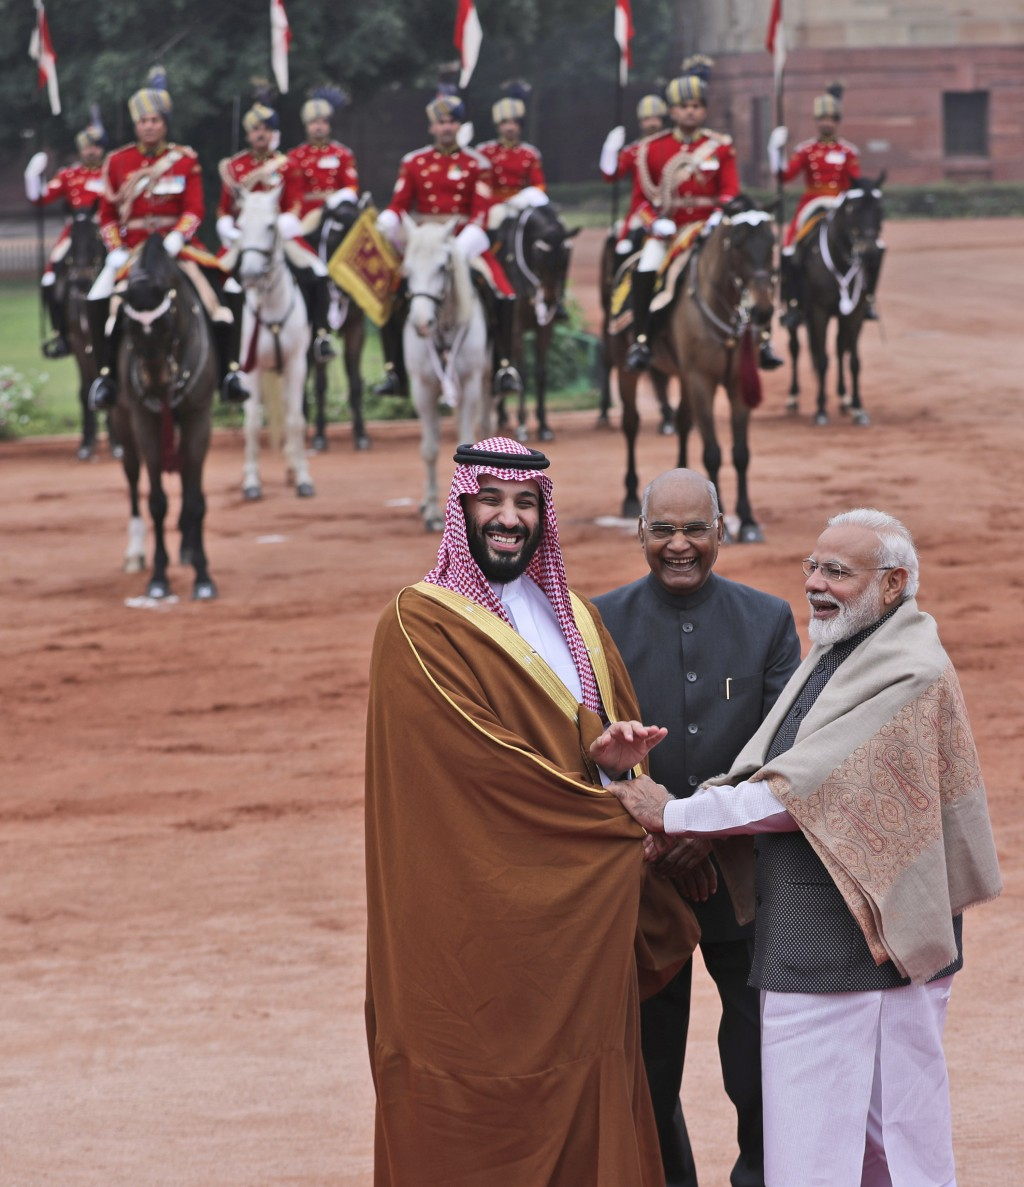 Saudi Arabia's Crown Prince Mohammed bin Salman shakes hand with Indian Prime Minister Narendra Modi, with Indian President Ram Nath Kovind standing b...